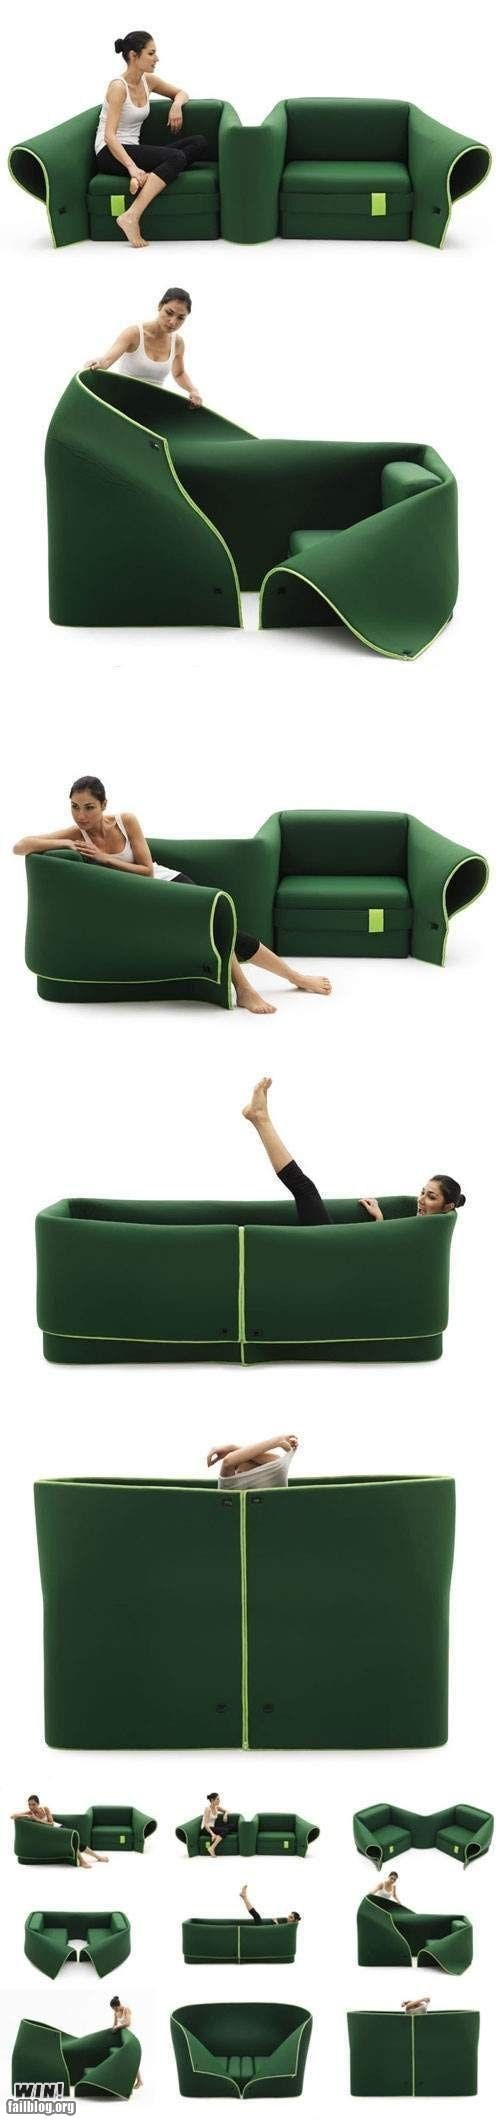 amorphous couch design furniture g rated Hall of Fame win - 6165489664